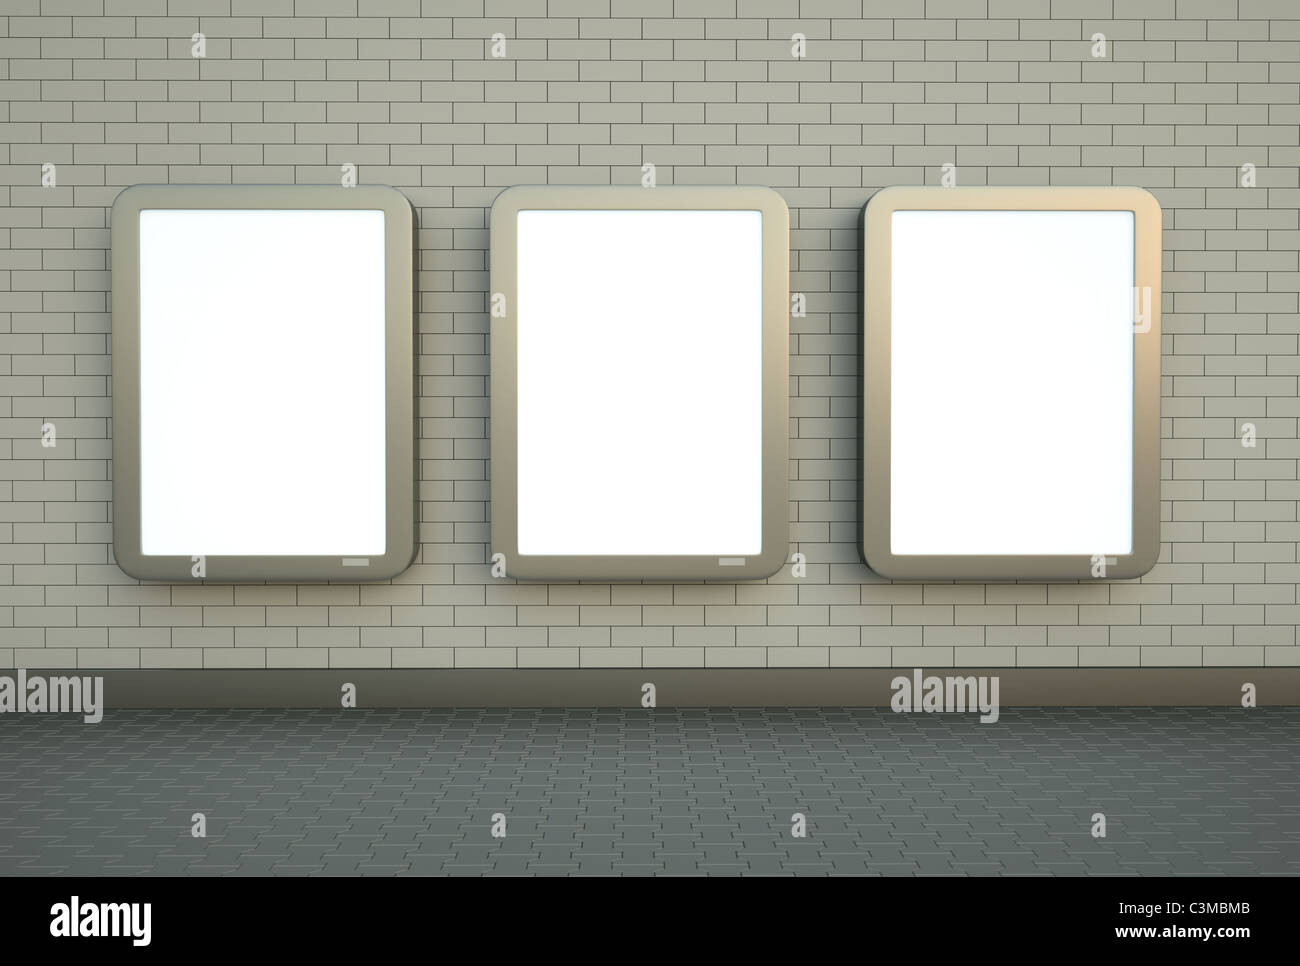 Three wall banners - Stock Image